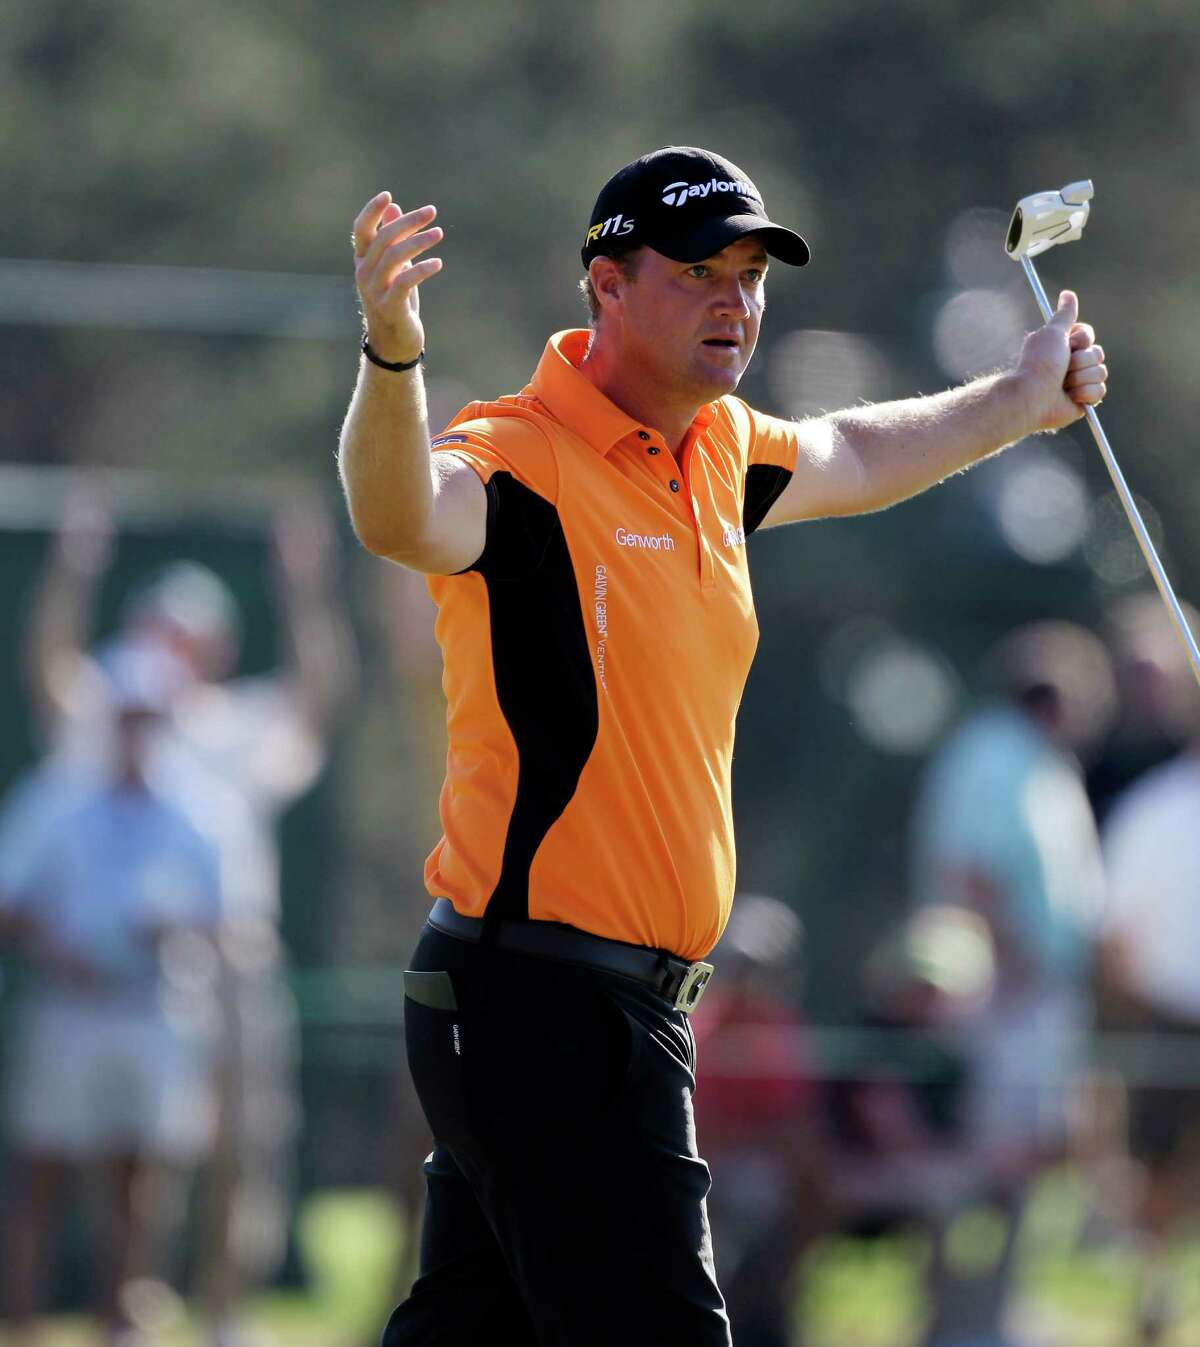 Peter Hanson, of Sweden, after his birdie putt on the 17th hole during the third round of the Masters golf tournament Saturday, April 7, 2012, in Augusta, Ga.